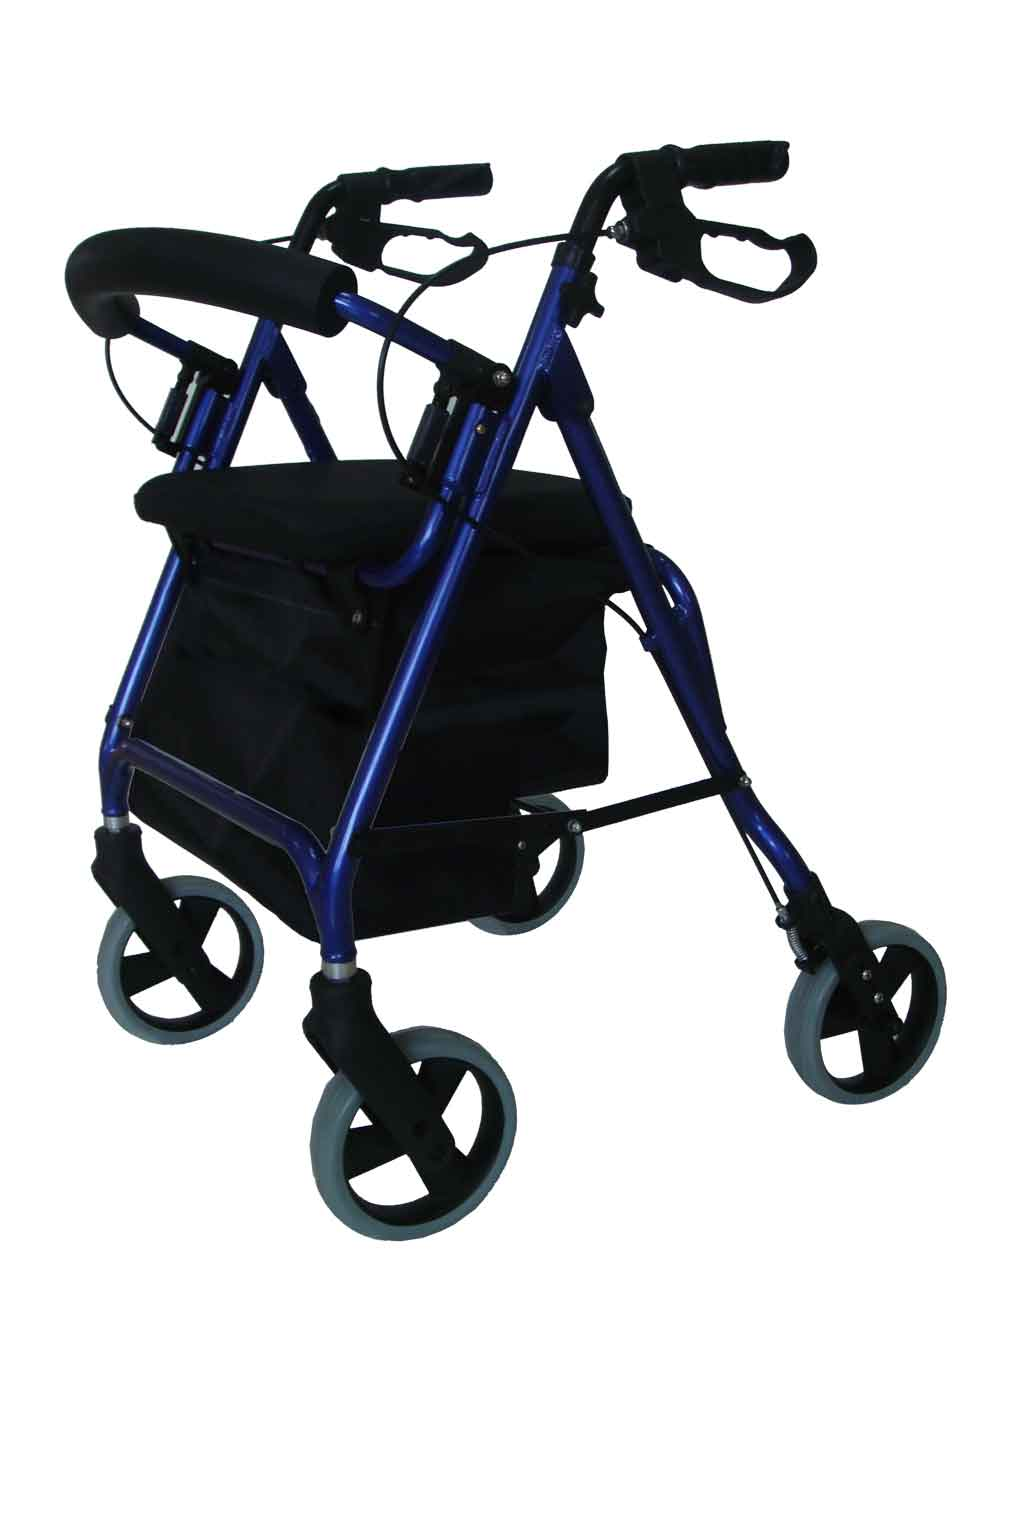 rollator volaris reviews, rollator how to choose, pronto rollators, cosco rollator